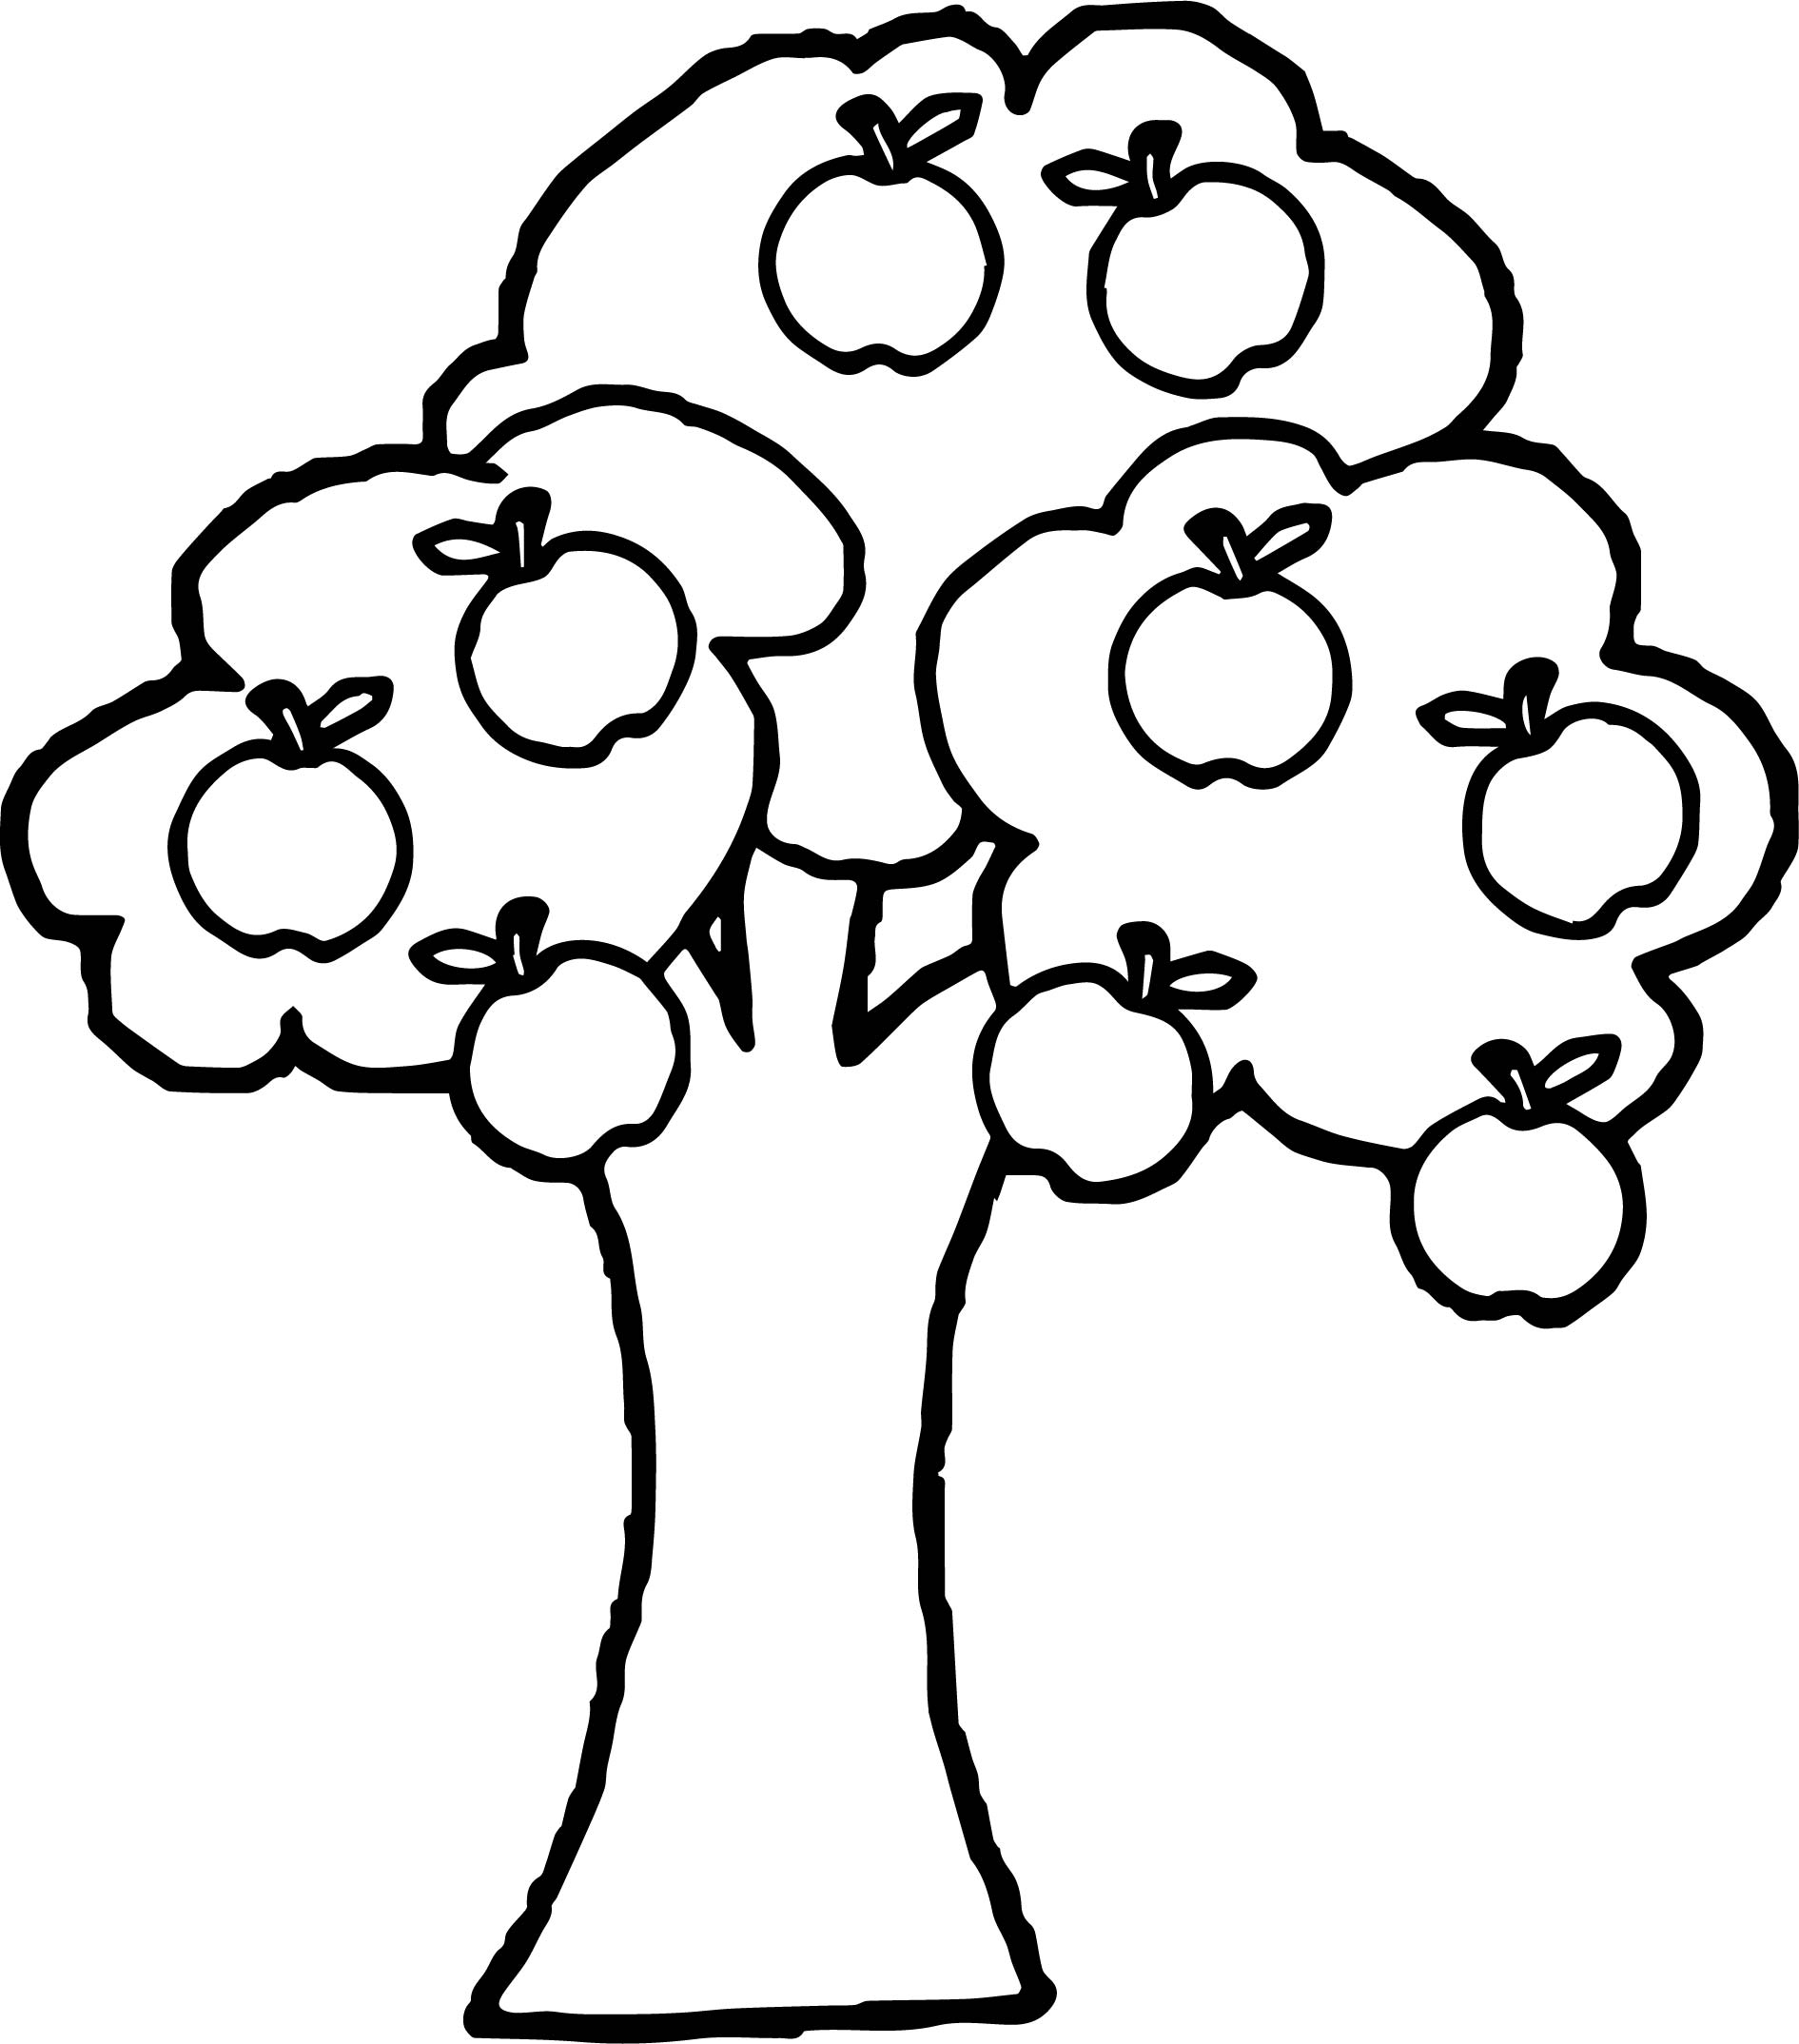 apple tree coloring sheet apple tree pictures to color coloring home sheet tree apple coloring